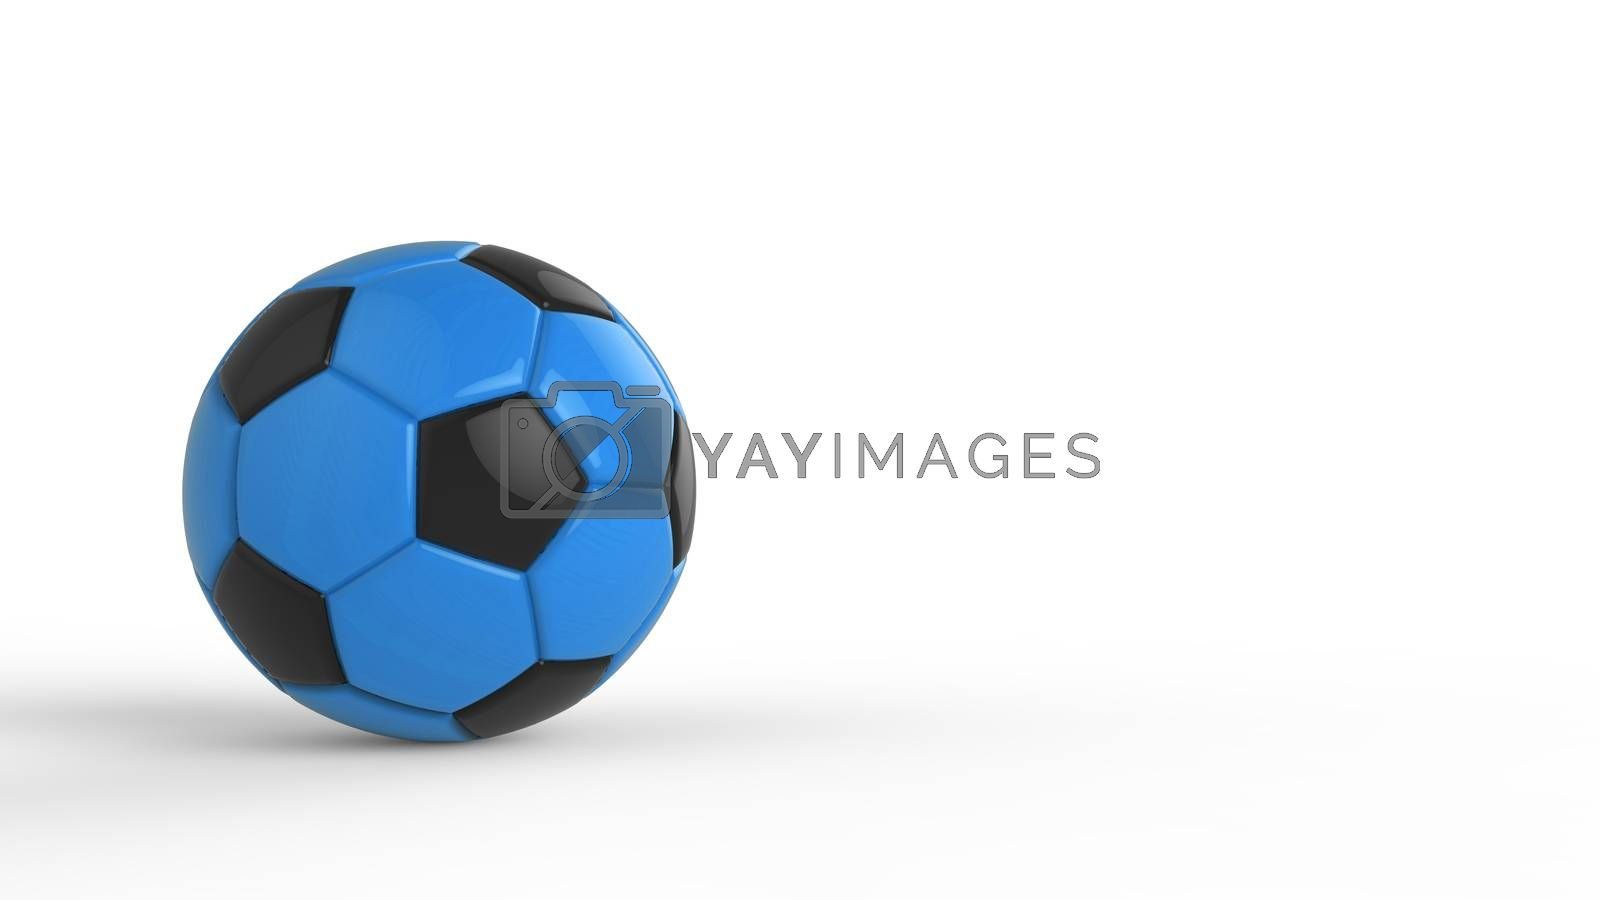 blue soccer plastic leather metal fabric ball isolated on black background. Football 3d render illustration.